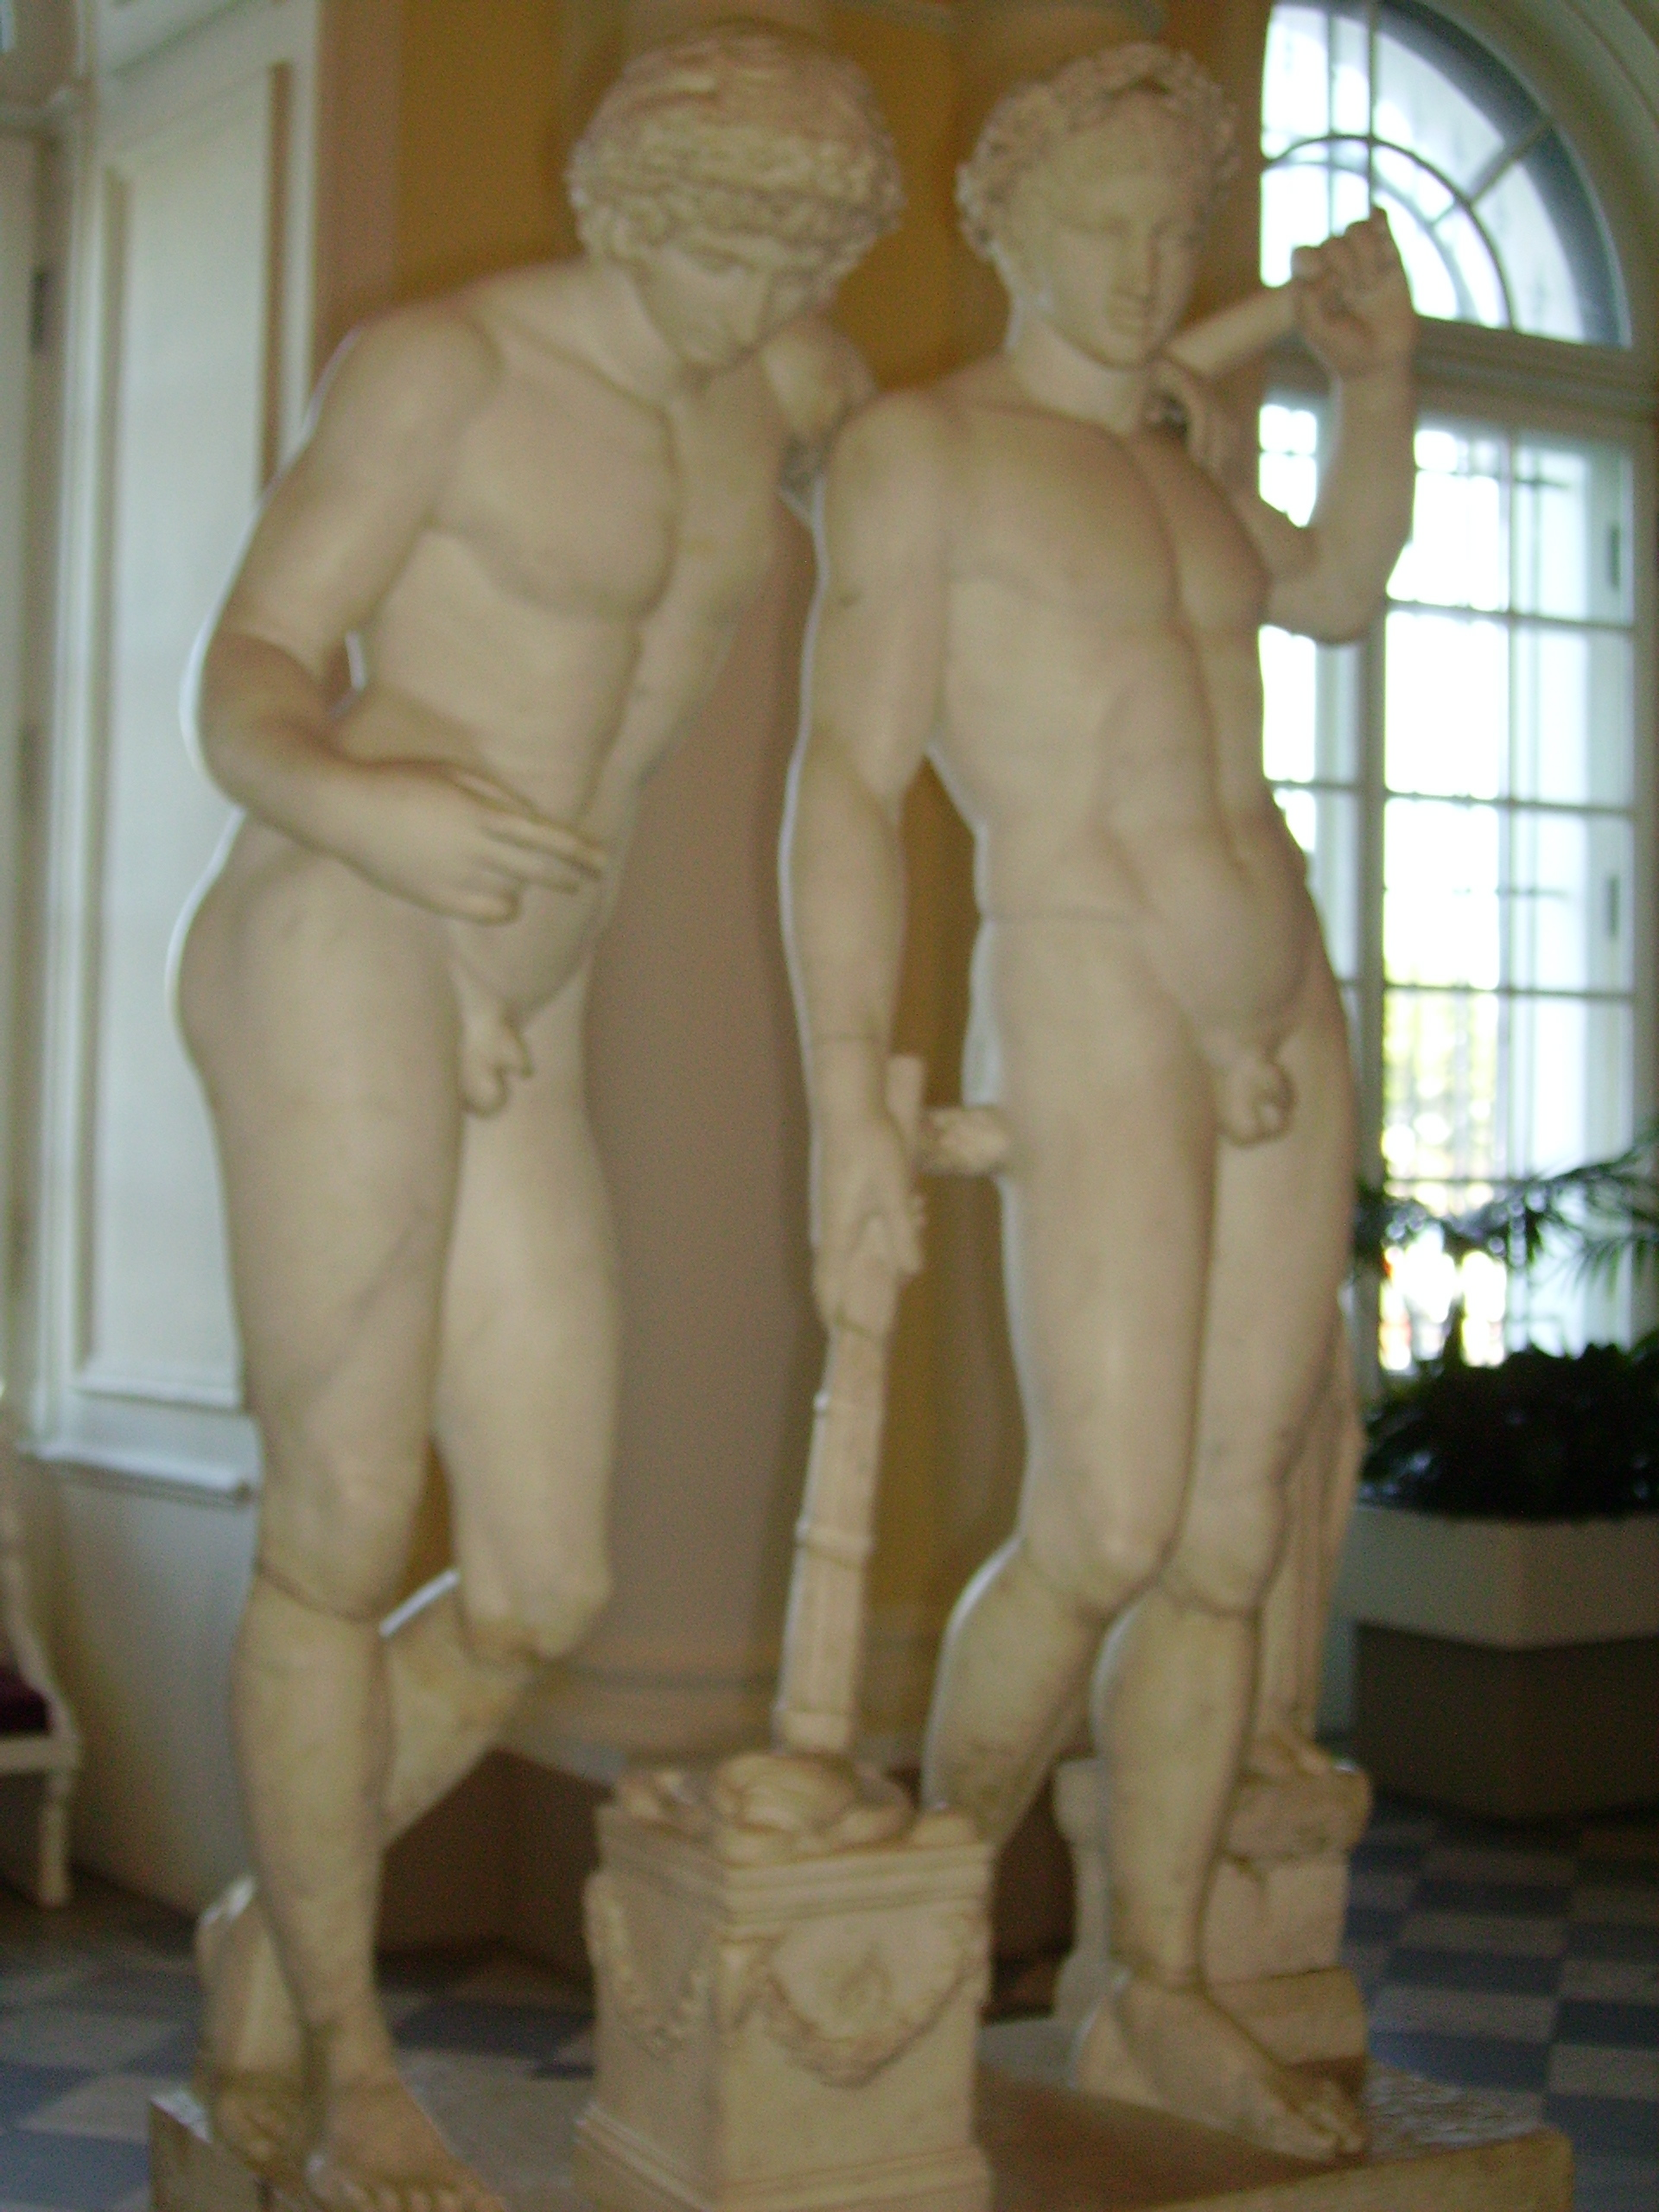 File:Castor and Pollux-Hermitage.jpg - Wikimedia Commons